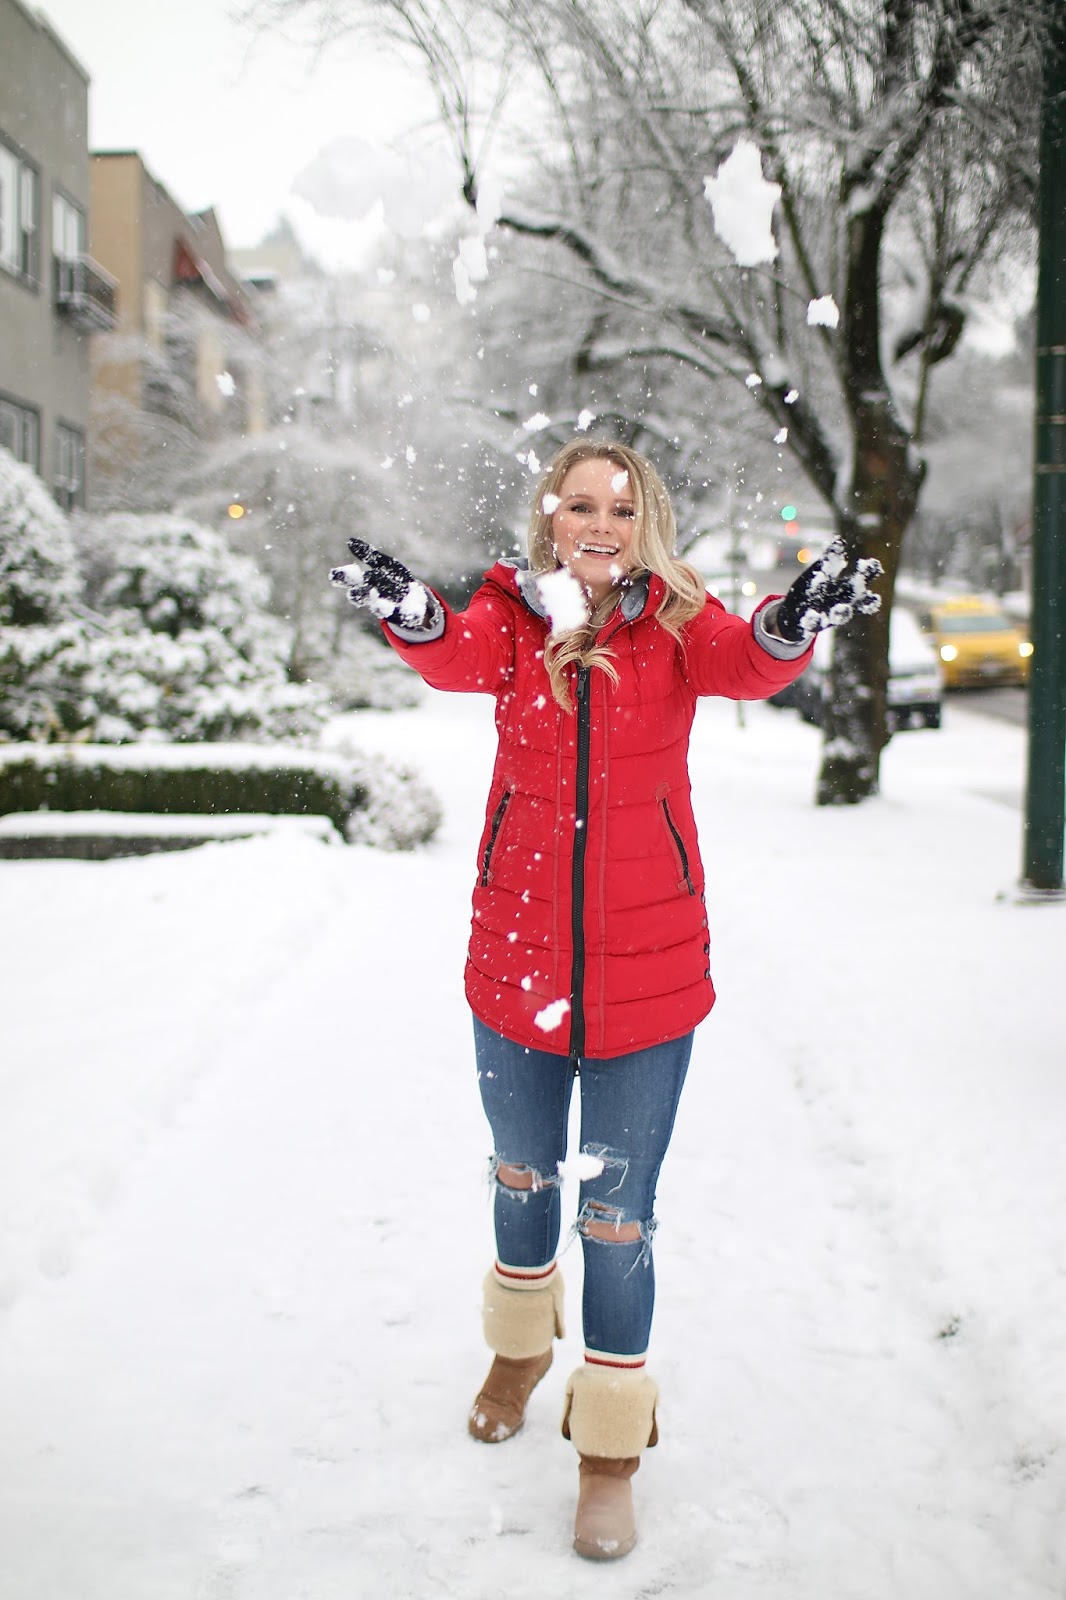 blonde women in red puffer jacket and ugg boots